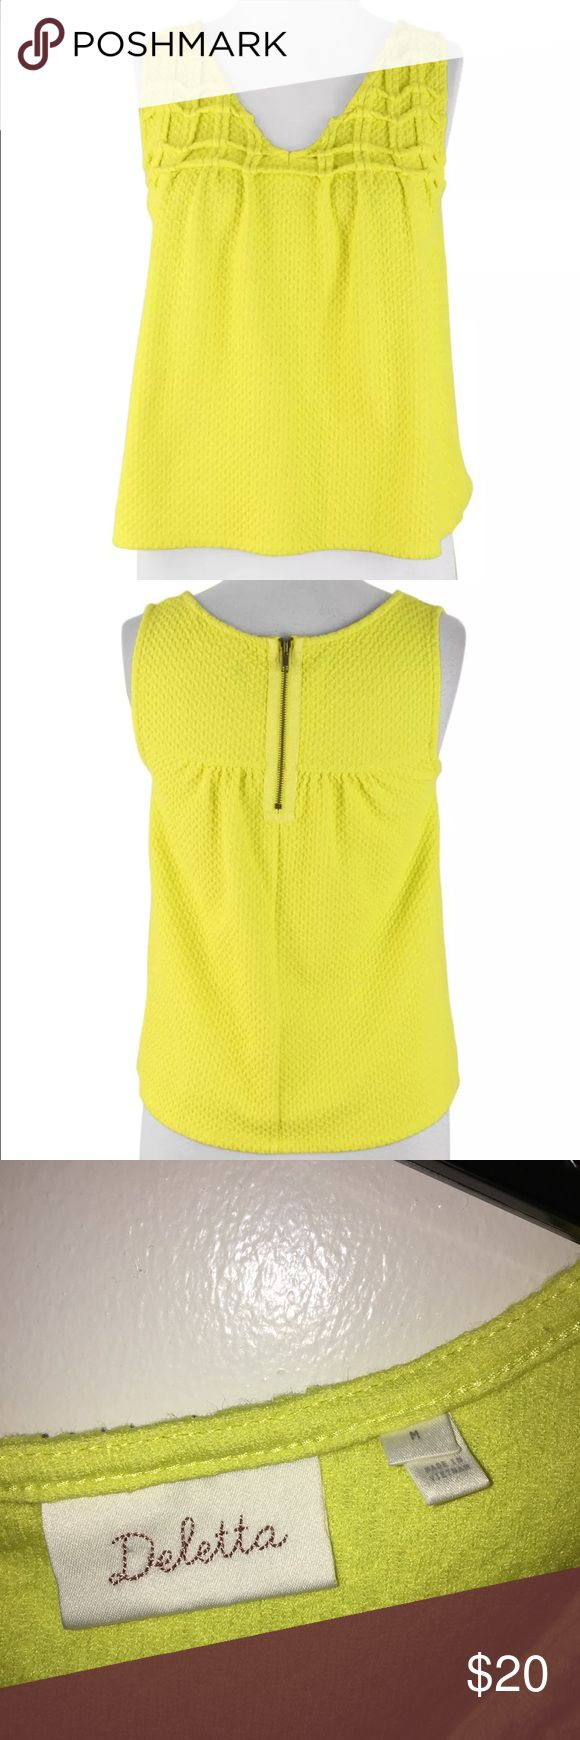 Anthropologie Deletta Yellow Textured Smock Tank EUC. Textured and stretchy swing tanktop in bold yellow. Zip up back of neck.  Very comfortable.  No stains. No rips. Anthropologie Tops Tank Tops